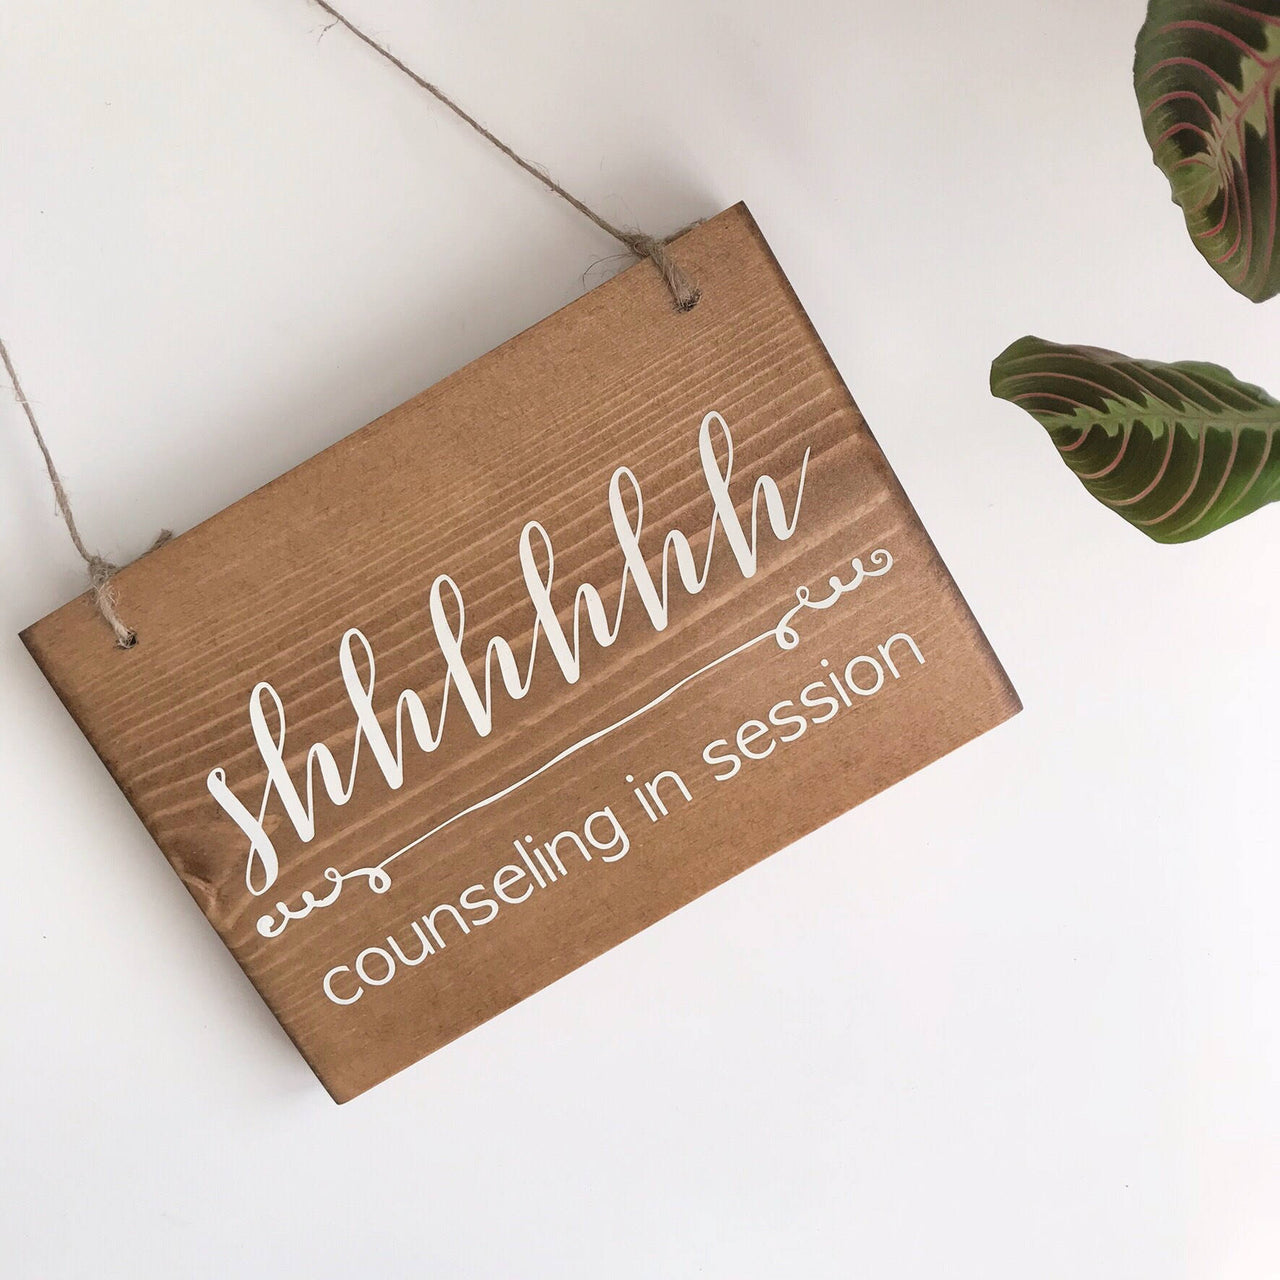 counseling in session hanging sign allybeth design co